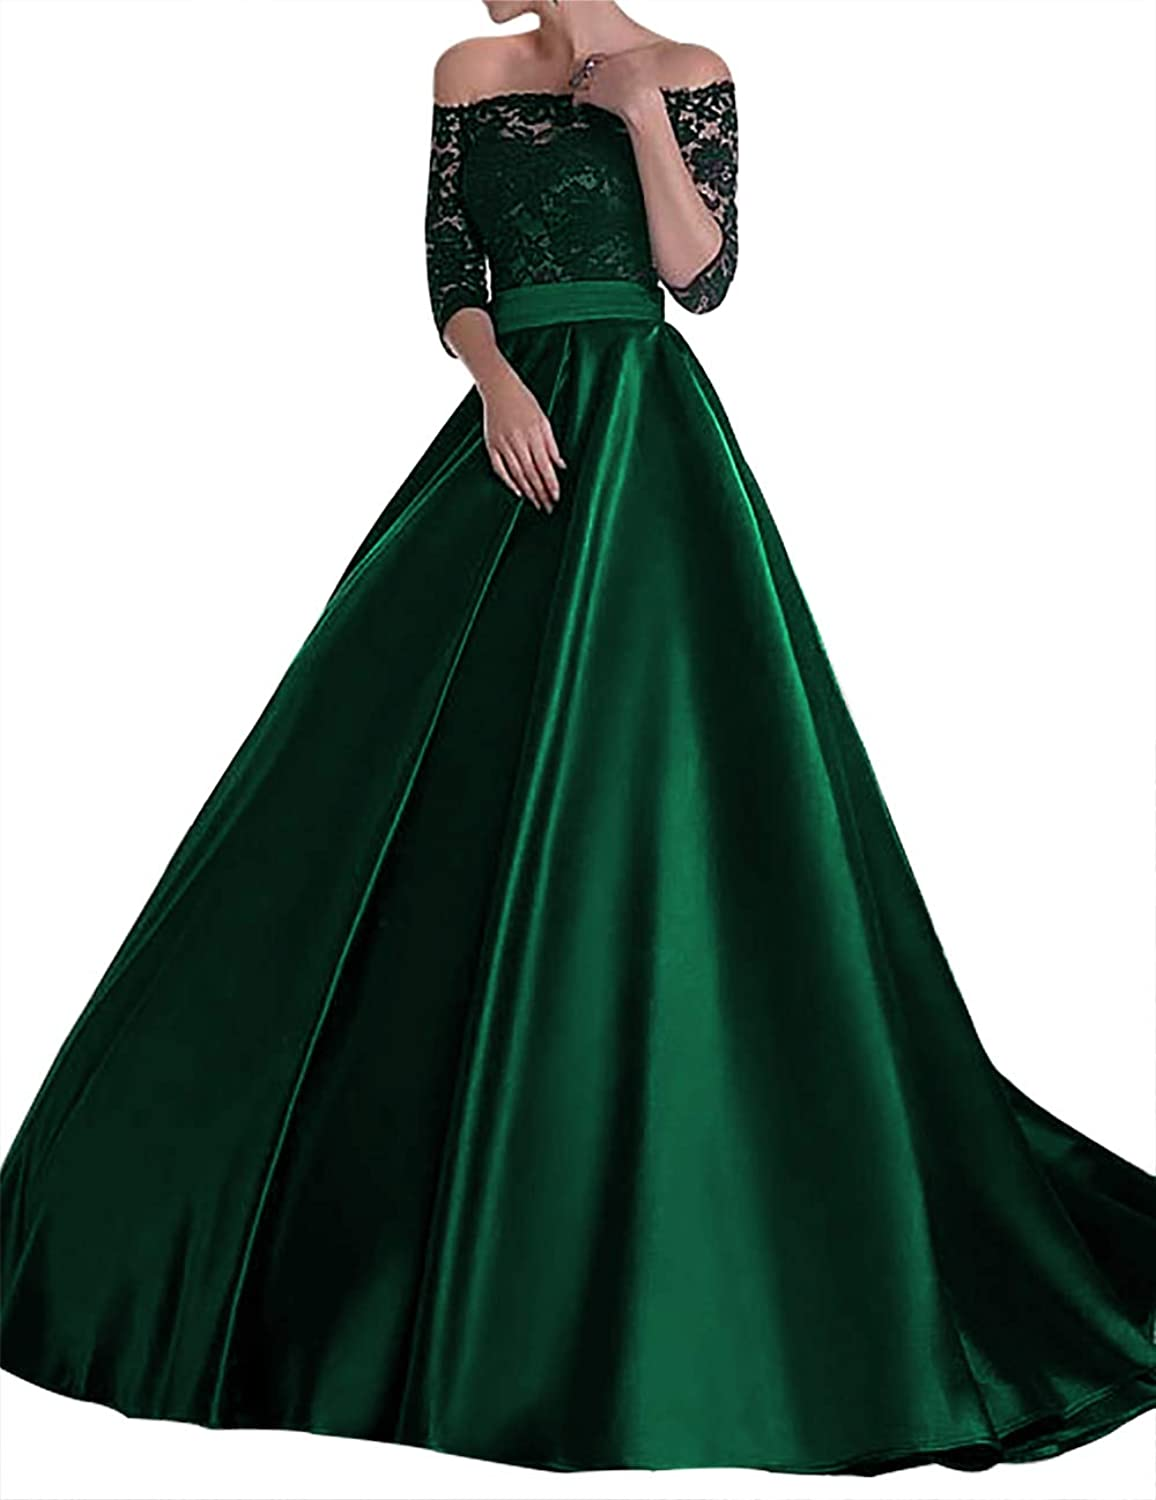 Scarisee Women's 3 4 Sleeves Off Shoulder Prom Evening Dress Lace Mother Gown104